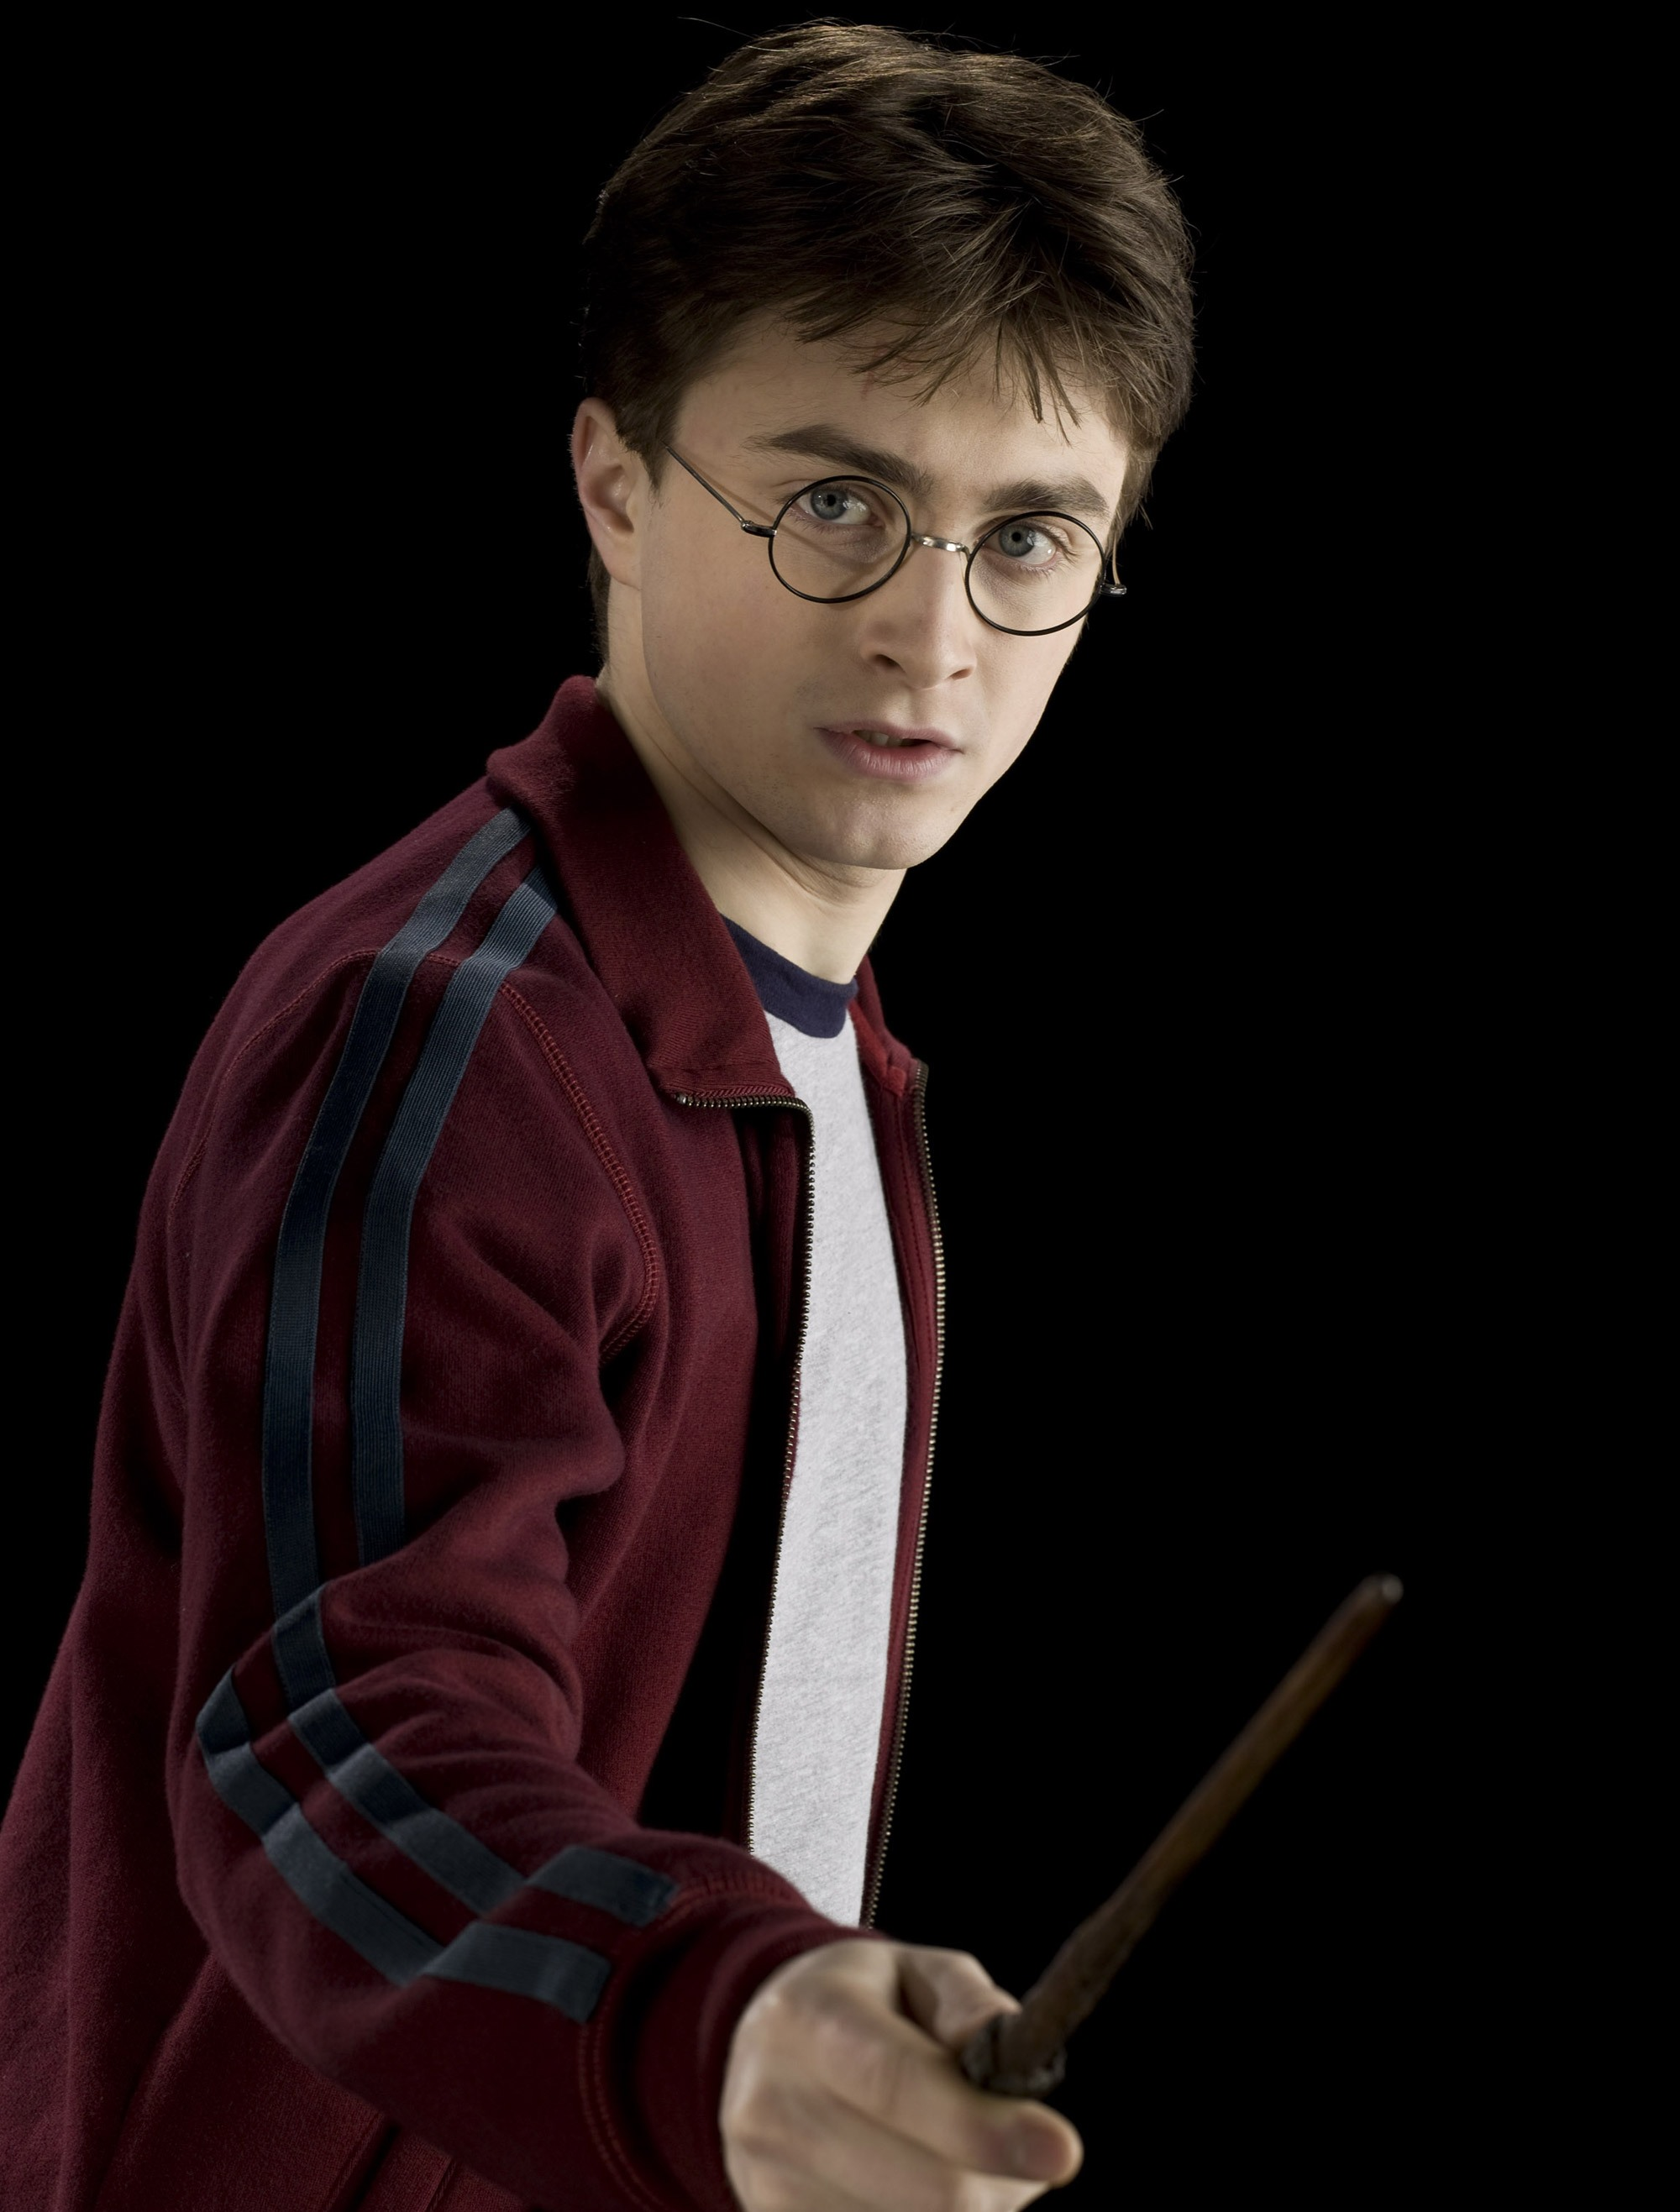 Image harry potter hbp promo 1 jpg harry potter wiki fandom